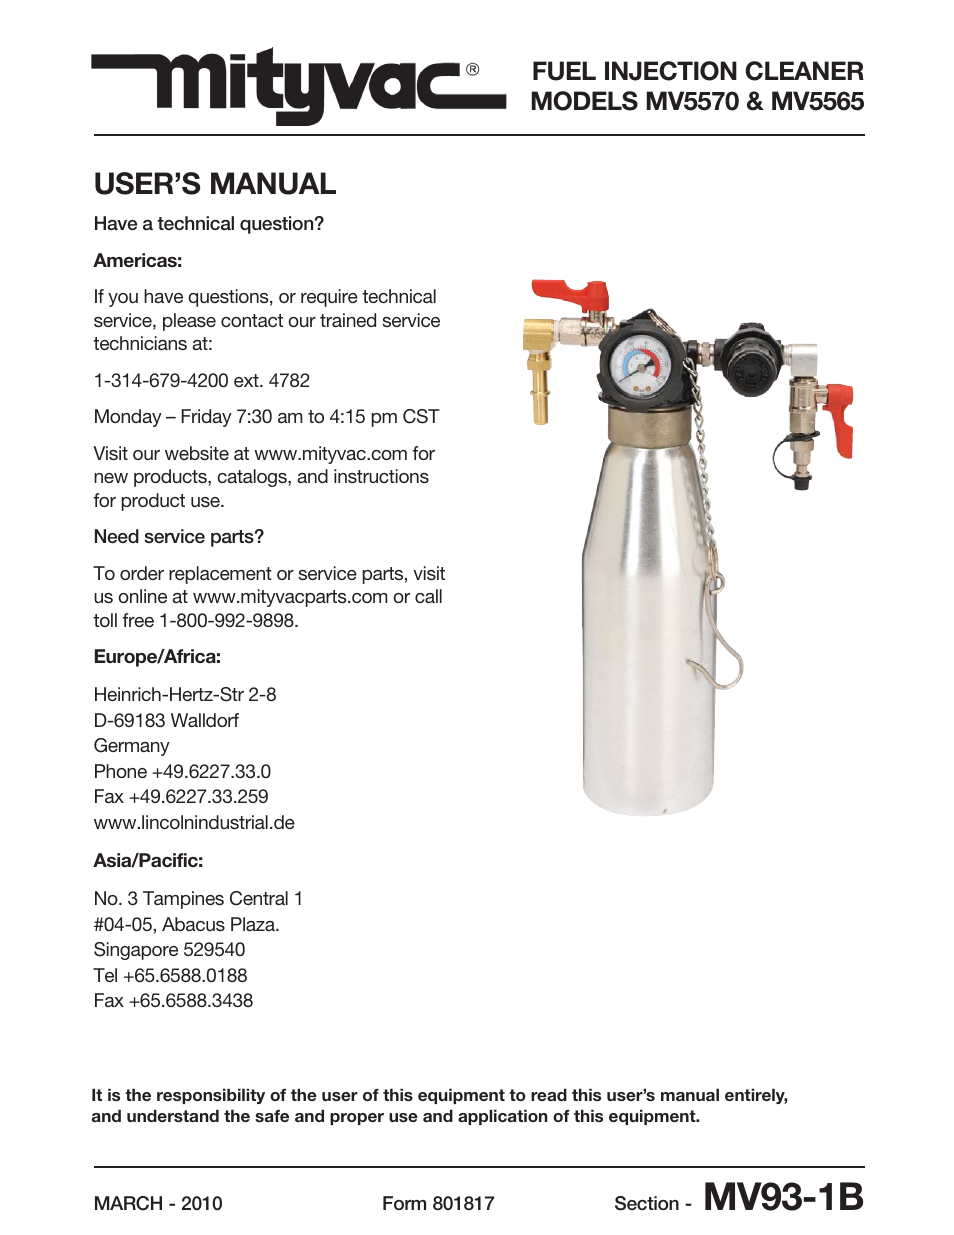 Mityvac MV5565 FUEL INJECTION CLEANER User Manual | 44 pages | Also for:  MV5570 FUEL INJECTION CLEANER